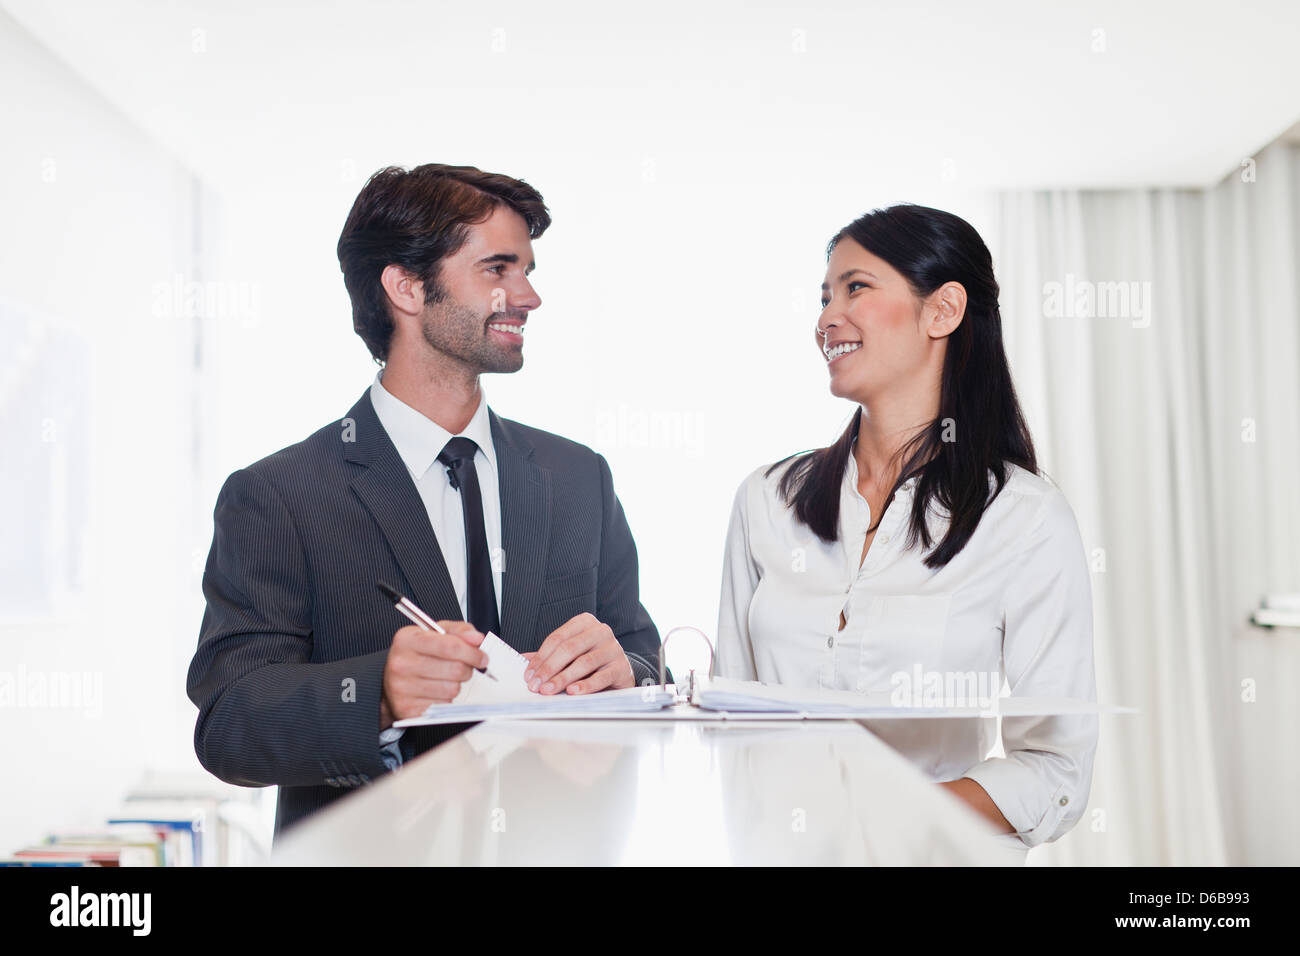 Business people smiling together - Stock Image